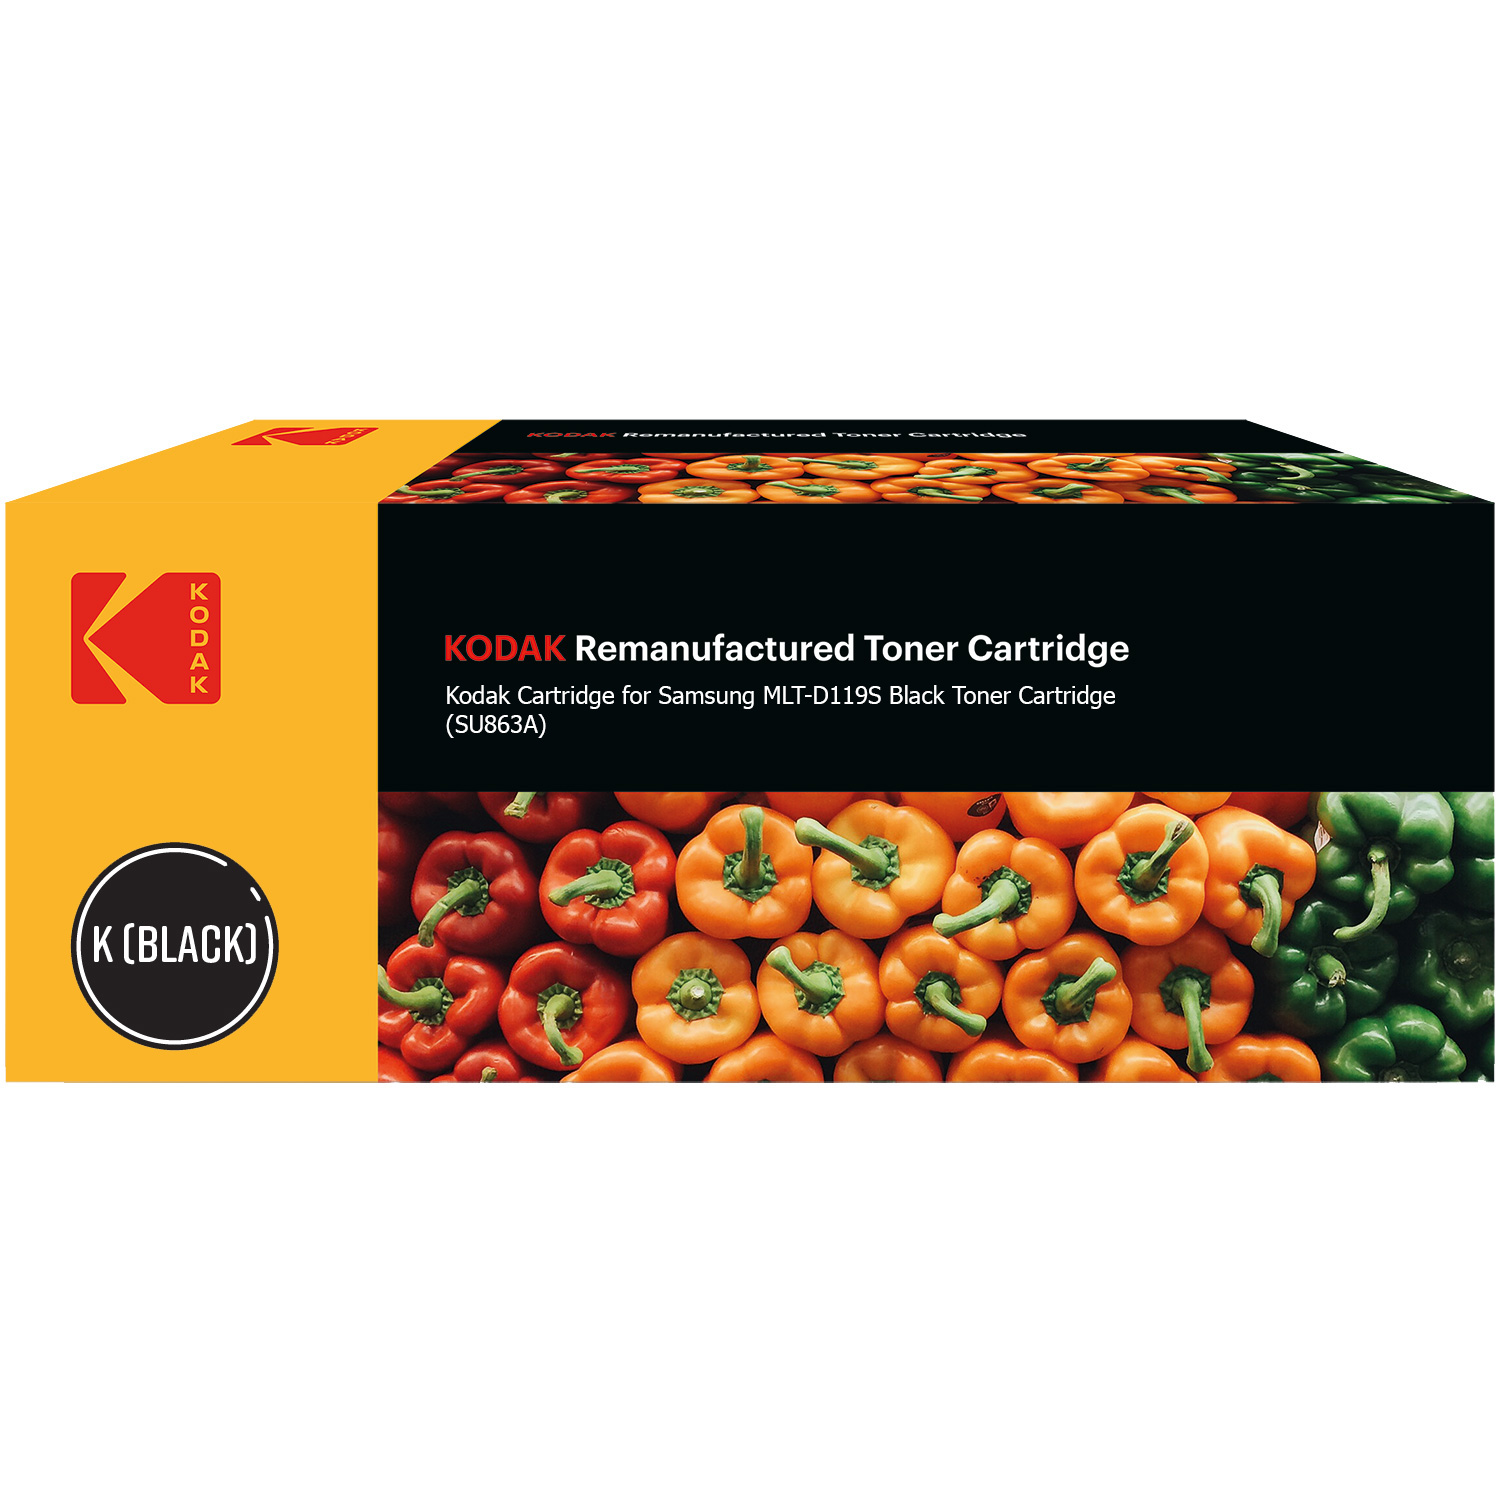 Ultimate Samsung MLT-D119S Black Toner Cartridge (SU863A) (Kodak KODML-2010D3)